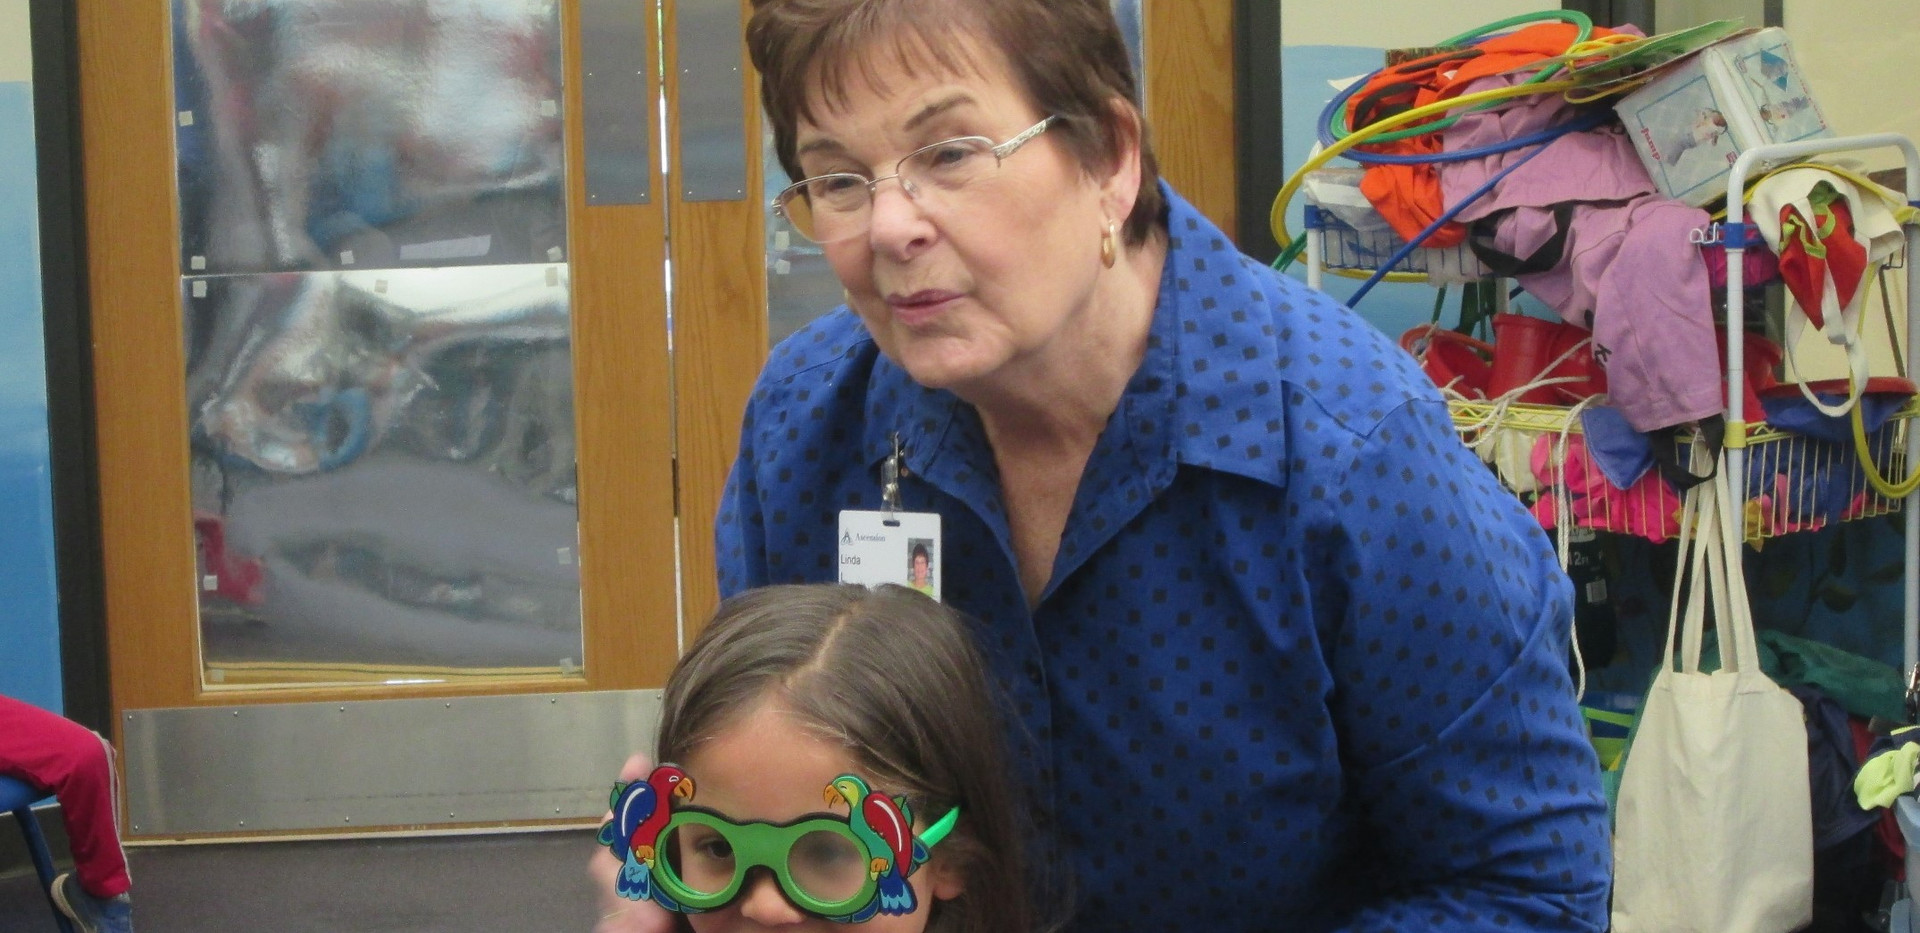 Ascension Mercy Hospital Volunteers in Oshkosh.  Our Children's Screening Services group does vision testing in the preschools.